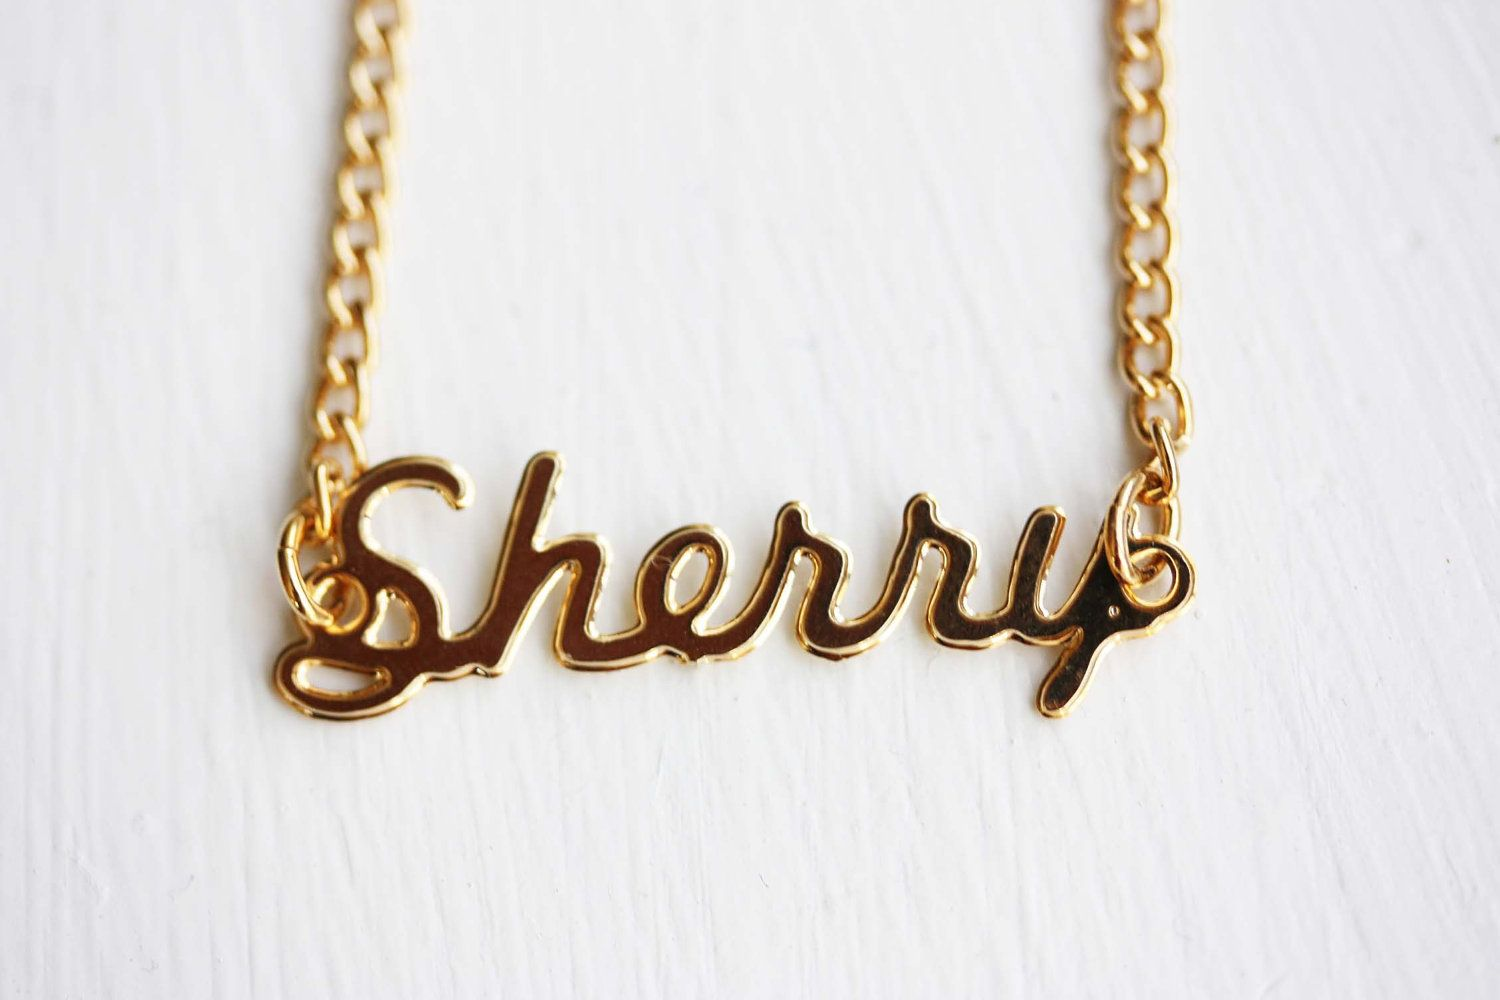 72c168e1c6a8a Vintage Name Necklace - Sherry | S is for Sherry | Gold name ...